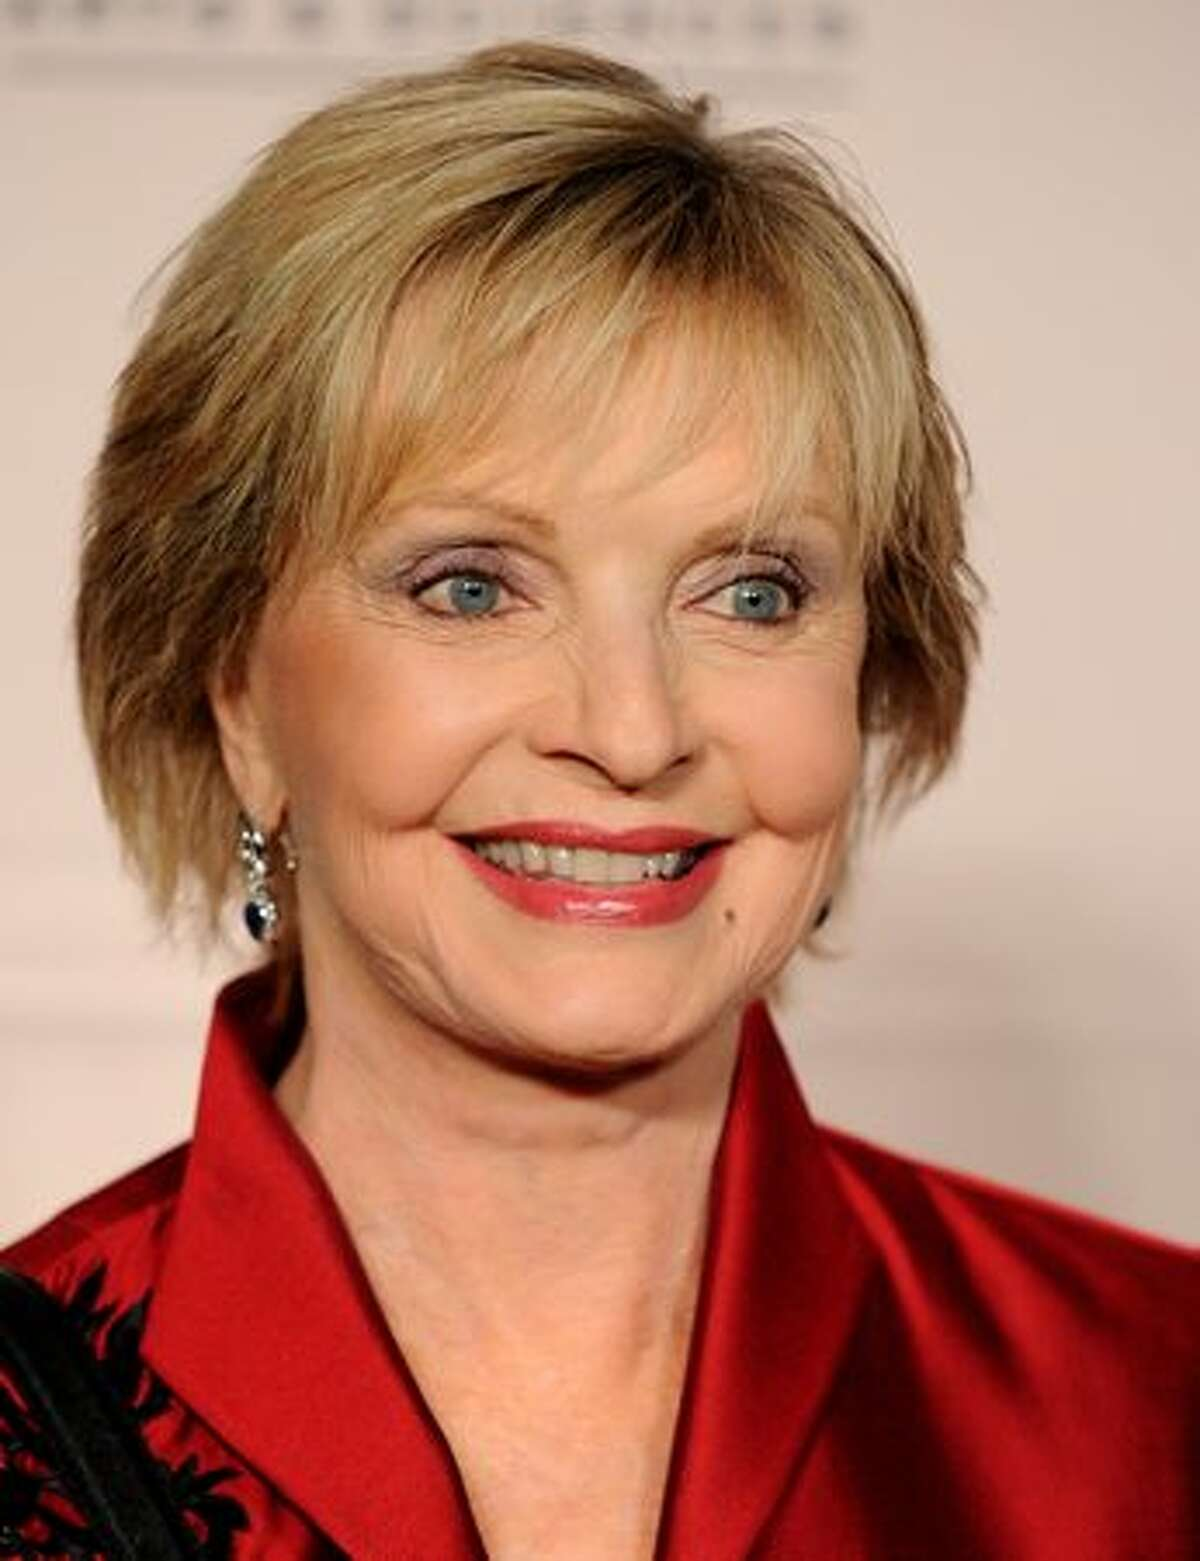 Actress Florence Henderson arrives at the Academy of Television Arts & Sciences' 3rd Annual Academy Honors at the Beverly Hills Hotel on May 5, 2010 in Beverly Hills, California.